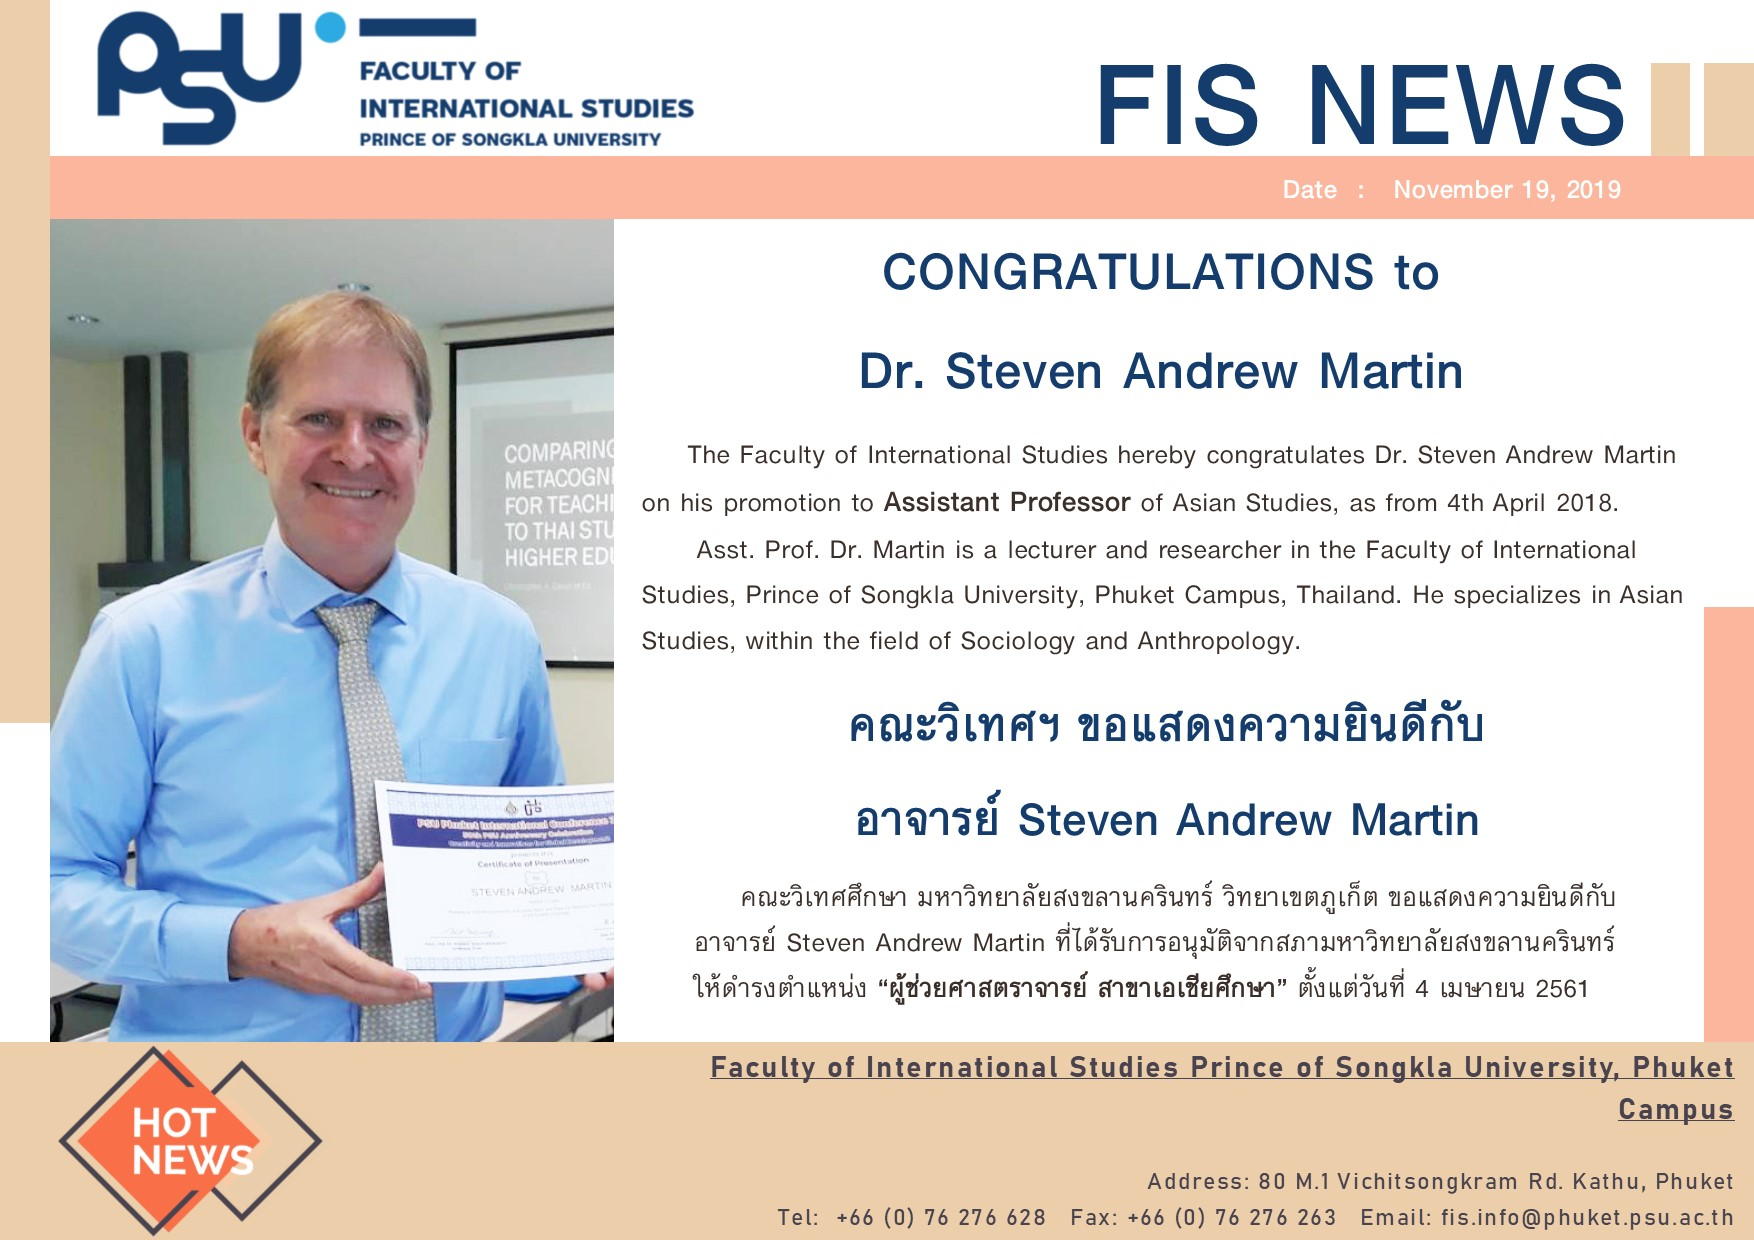 Prince of Songkla University News |  Faculty of International Studies | Congratulation Dr. Steven A Martin on promotion to Assistant Professor of Asian Studies